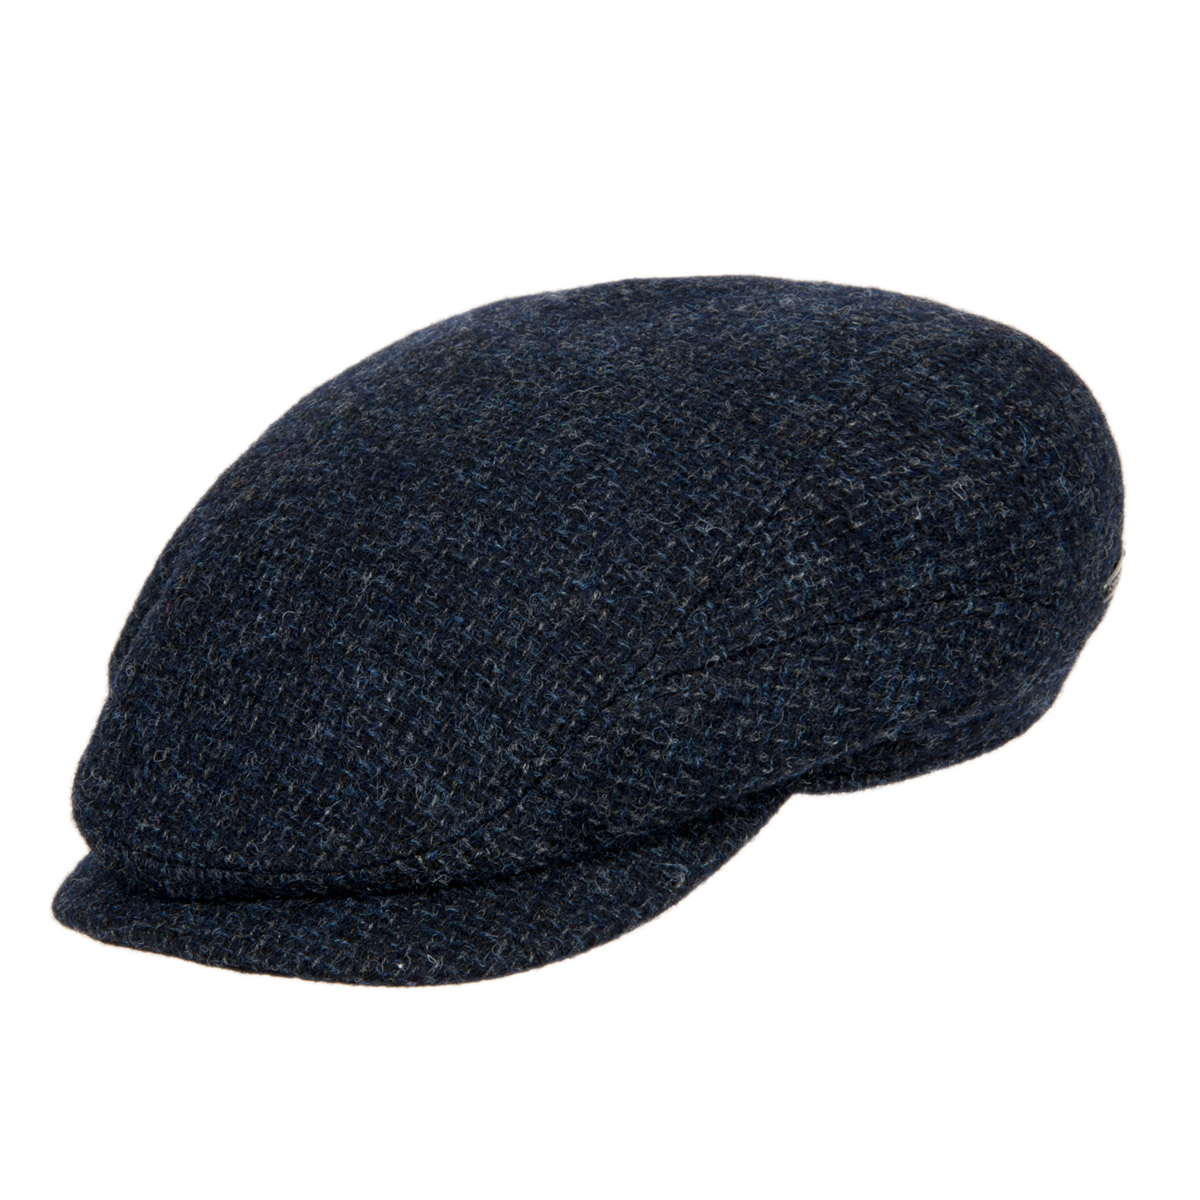 Flat Cap Lined In Wool Driver Cap Wool By Stetson